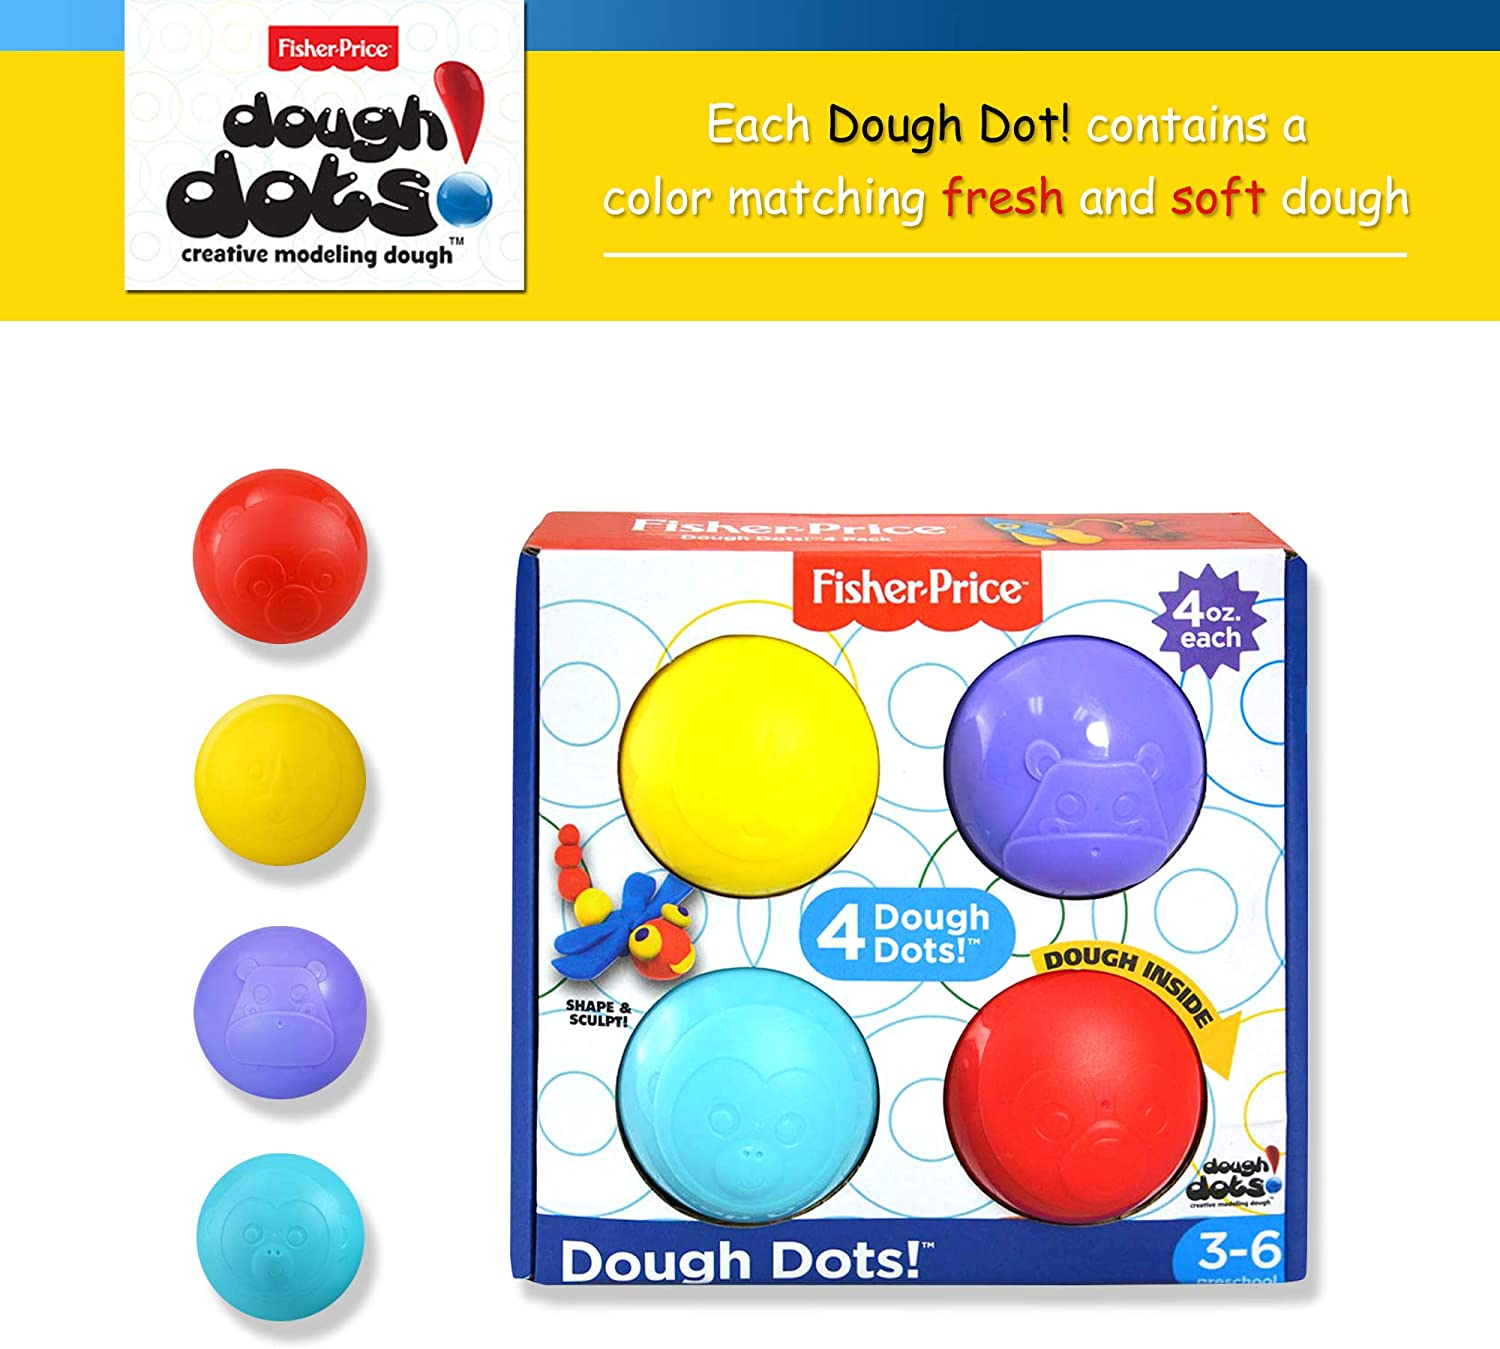 Dots 8-Pack Non-Toxic and Child-Safe Creative Modeling and Play Dough Set 4oz Easy-Open Storage Dots Act as Fun Dough Tools for Stamping and Molding Great Kids Travel Toys Dough Dots